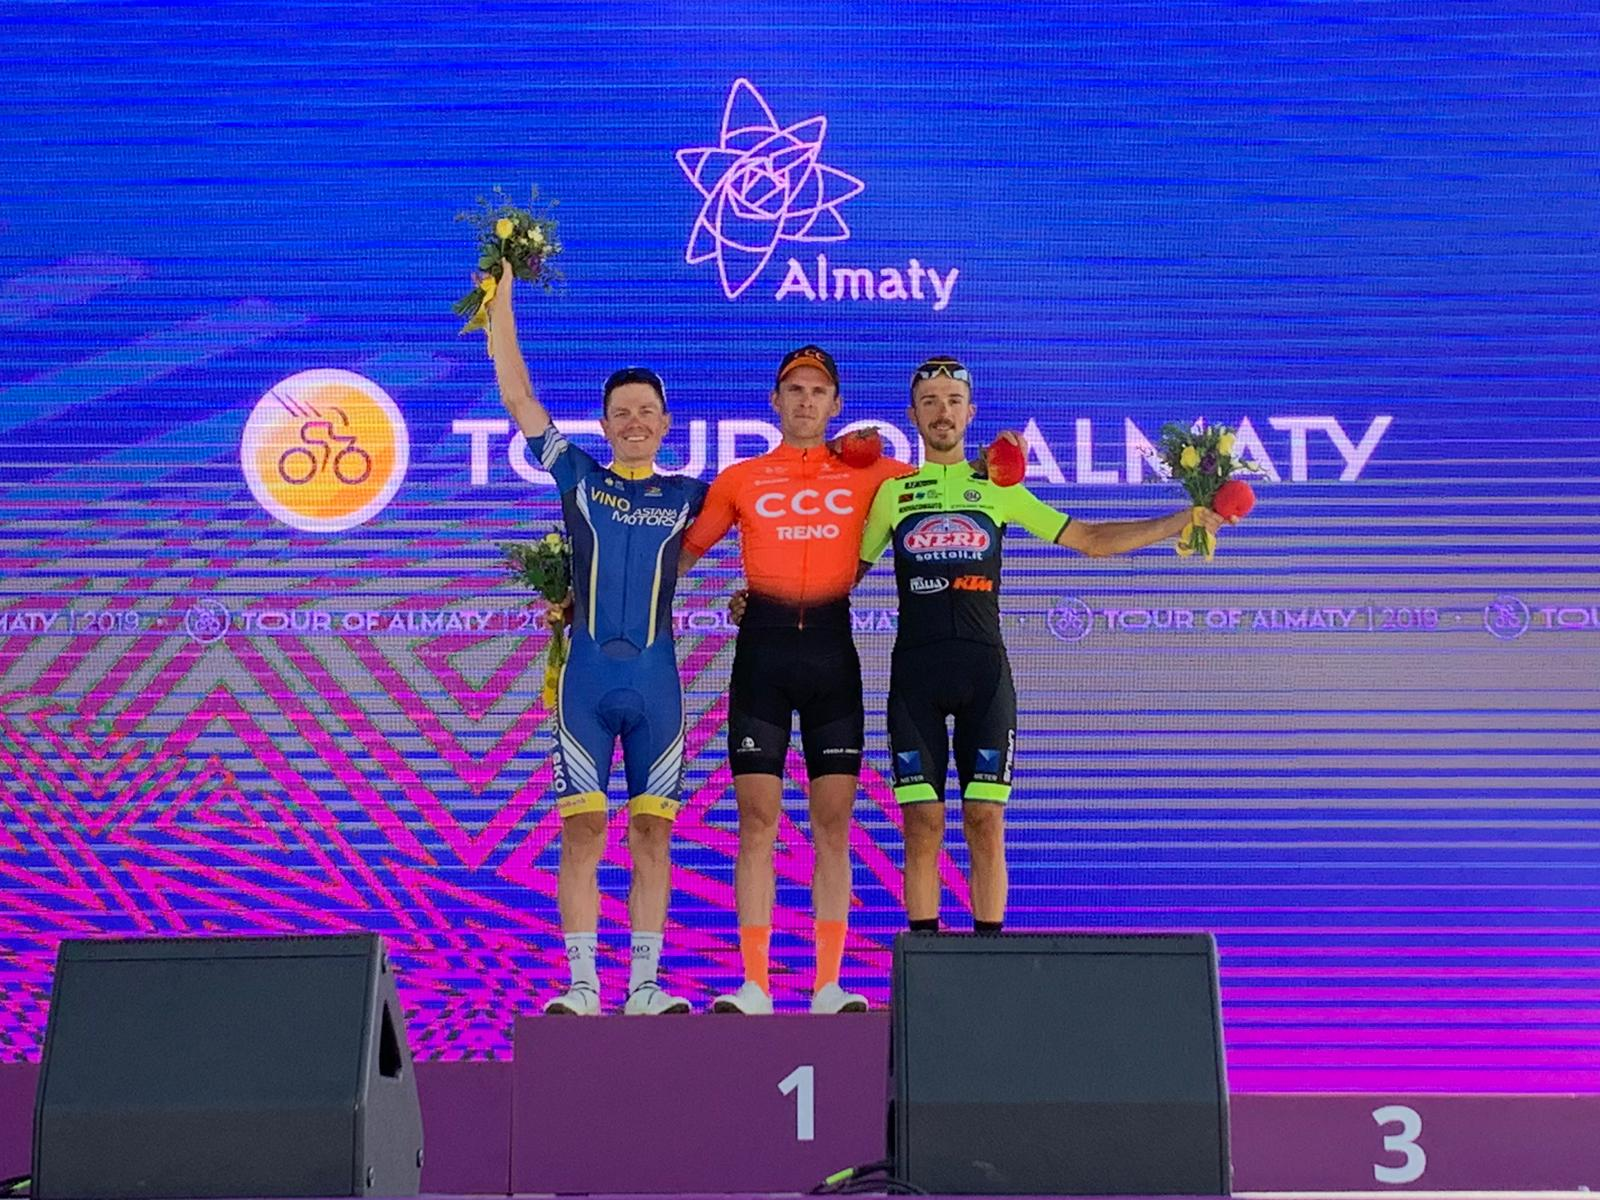 TOUR OF ALMATY: DAVIDE GABBURO ON THE PODIUM IN THE 1ST STAGE